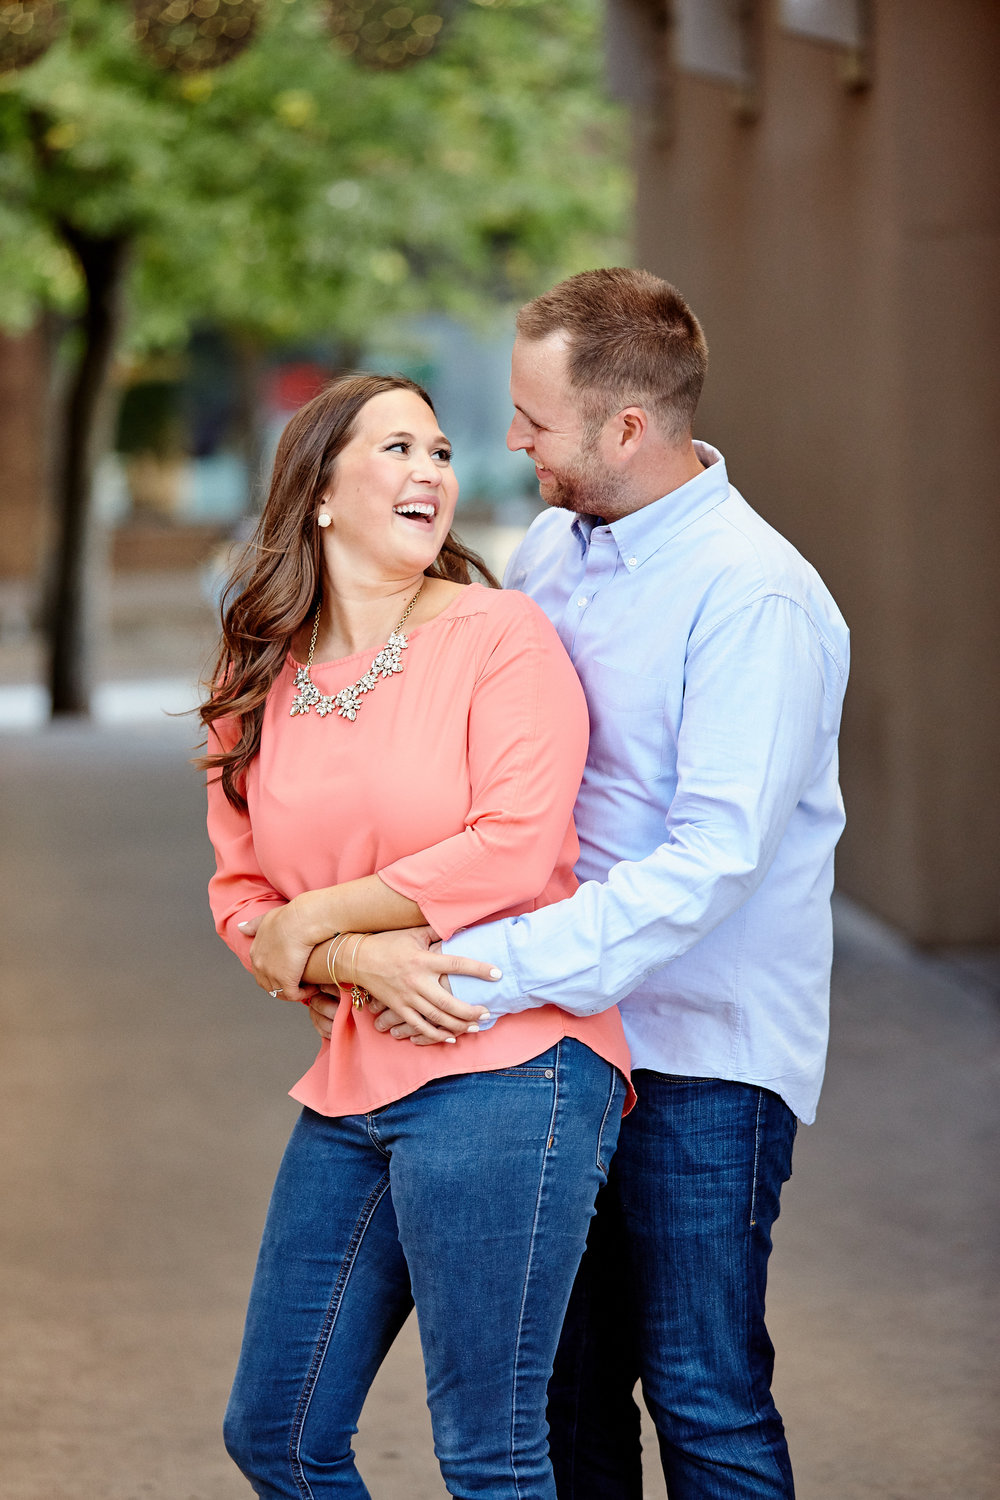 Iowa City Engagement Session by St Louis Wedding Photographers Oldani Photography 35.jpg